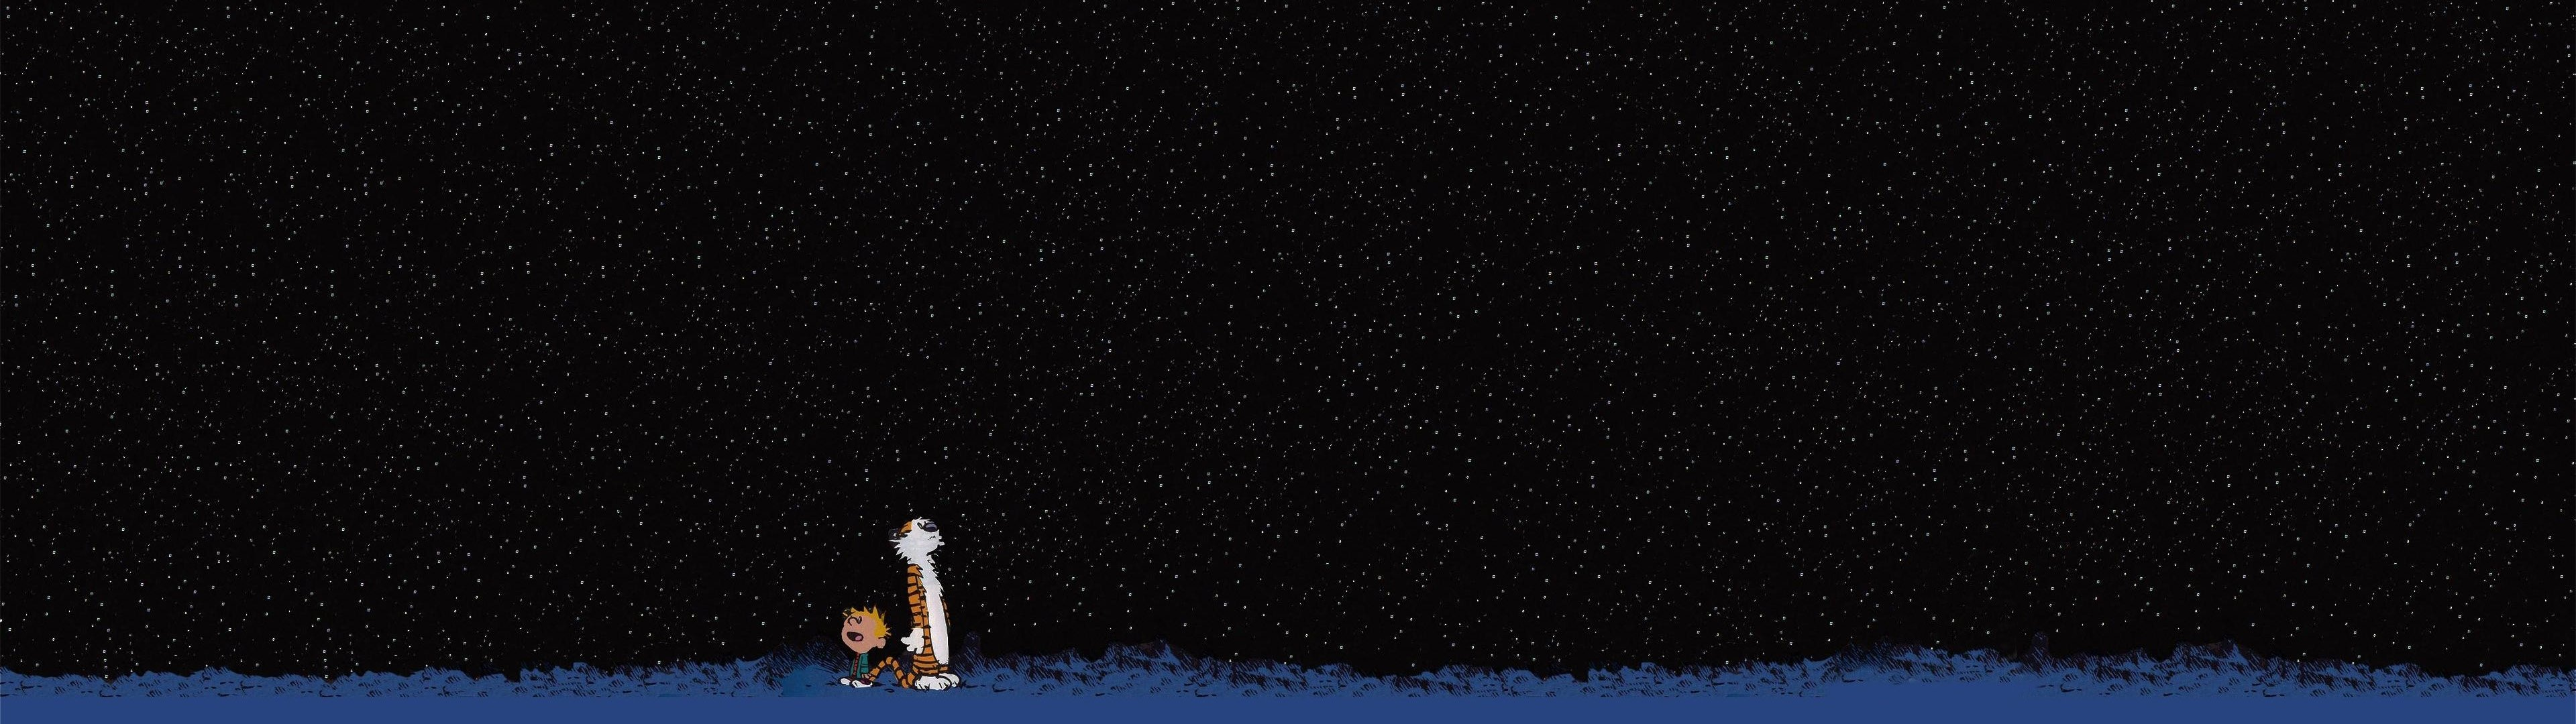 Free Download 3840x1080 Stars Calvin And Hobbes 3840x1080